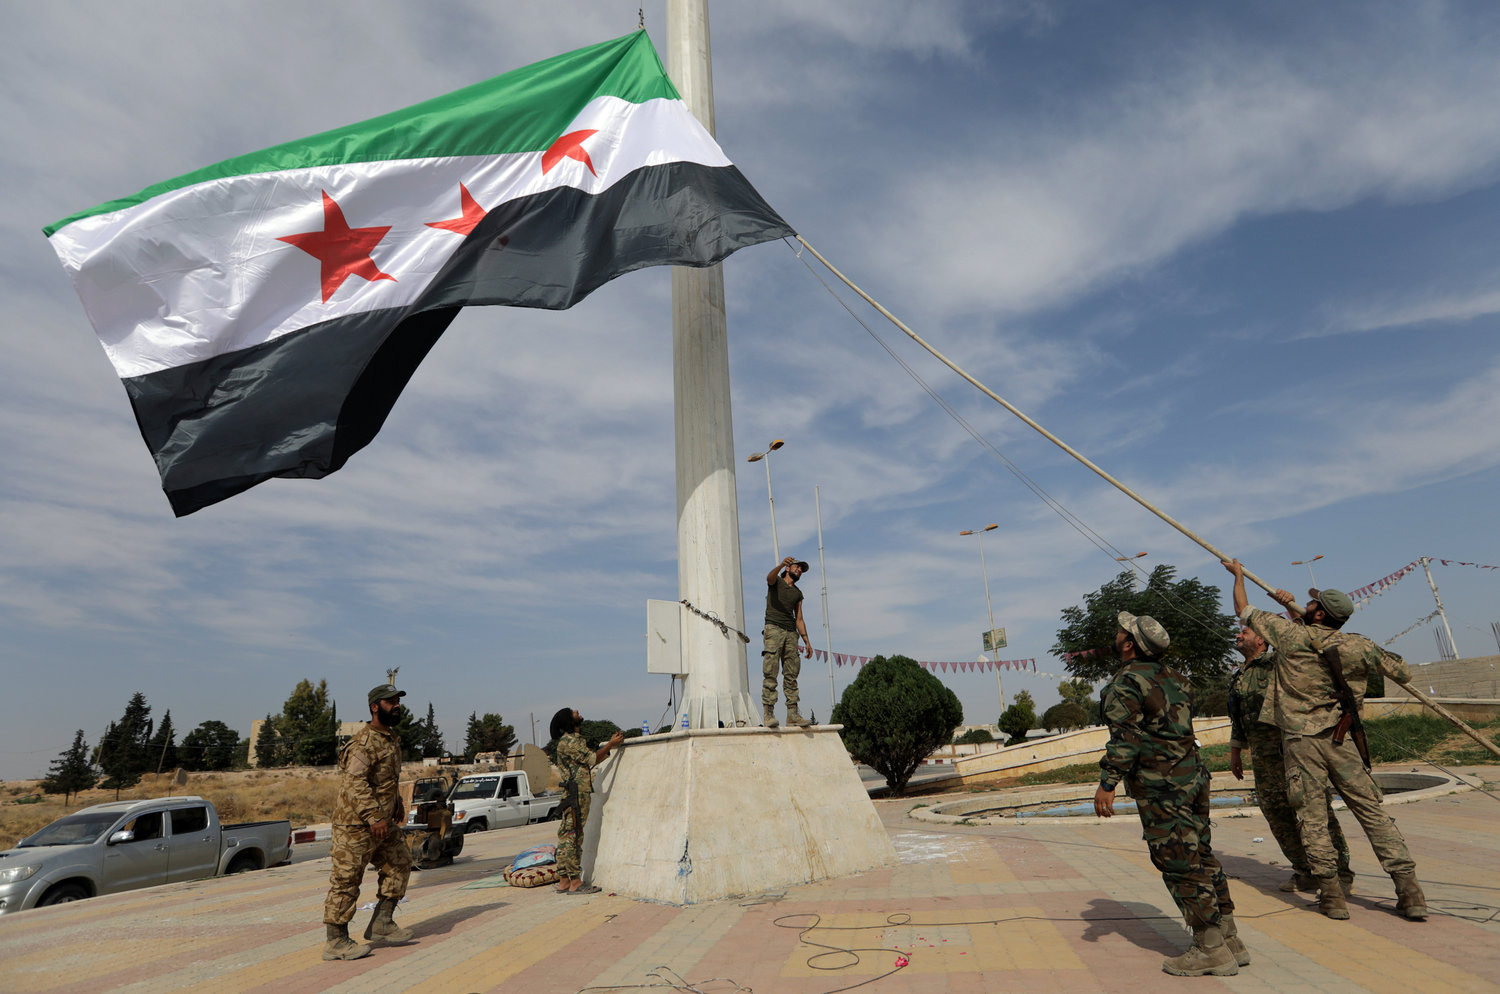 Turkish-backed Syrian rebel fighters raise the Syrian opposition flag at the border town of Tel Abyad, Syria, Oct. 14, 2019.